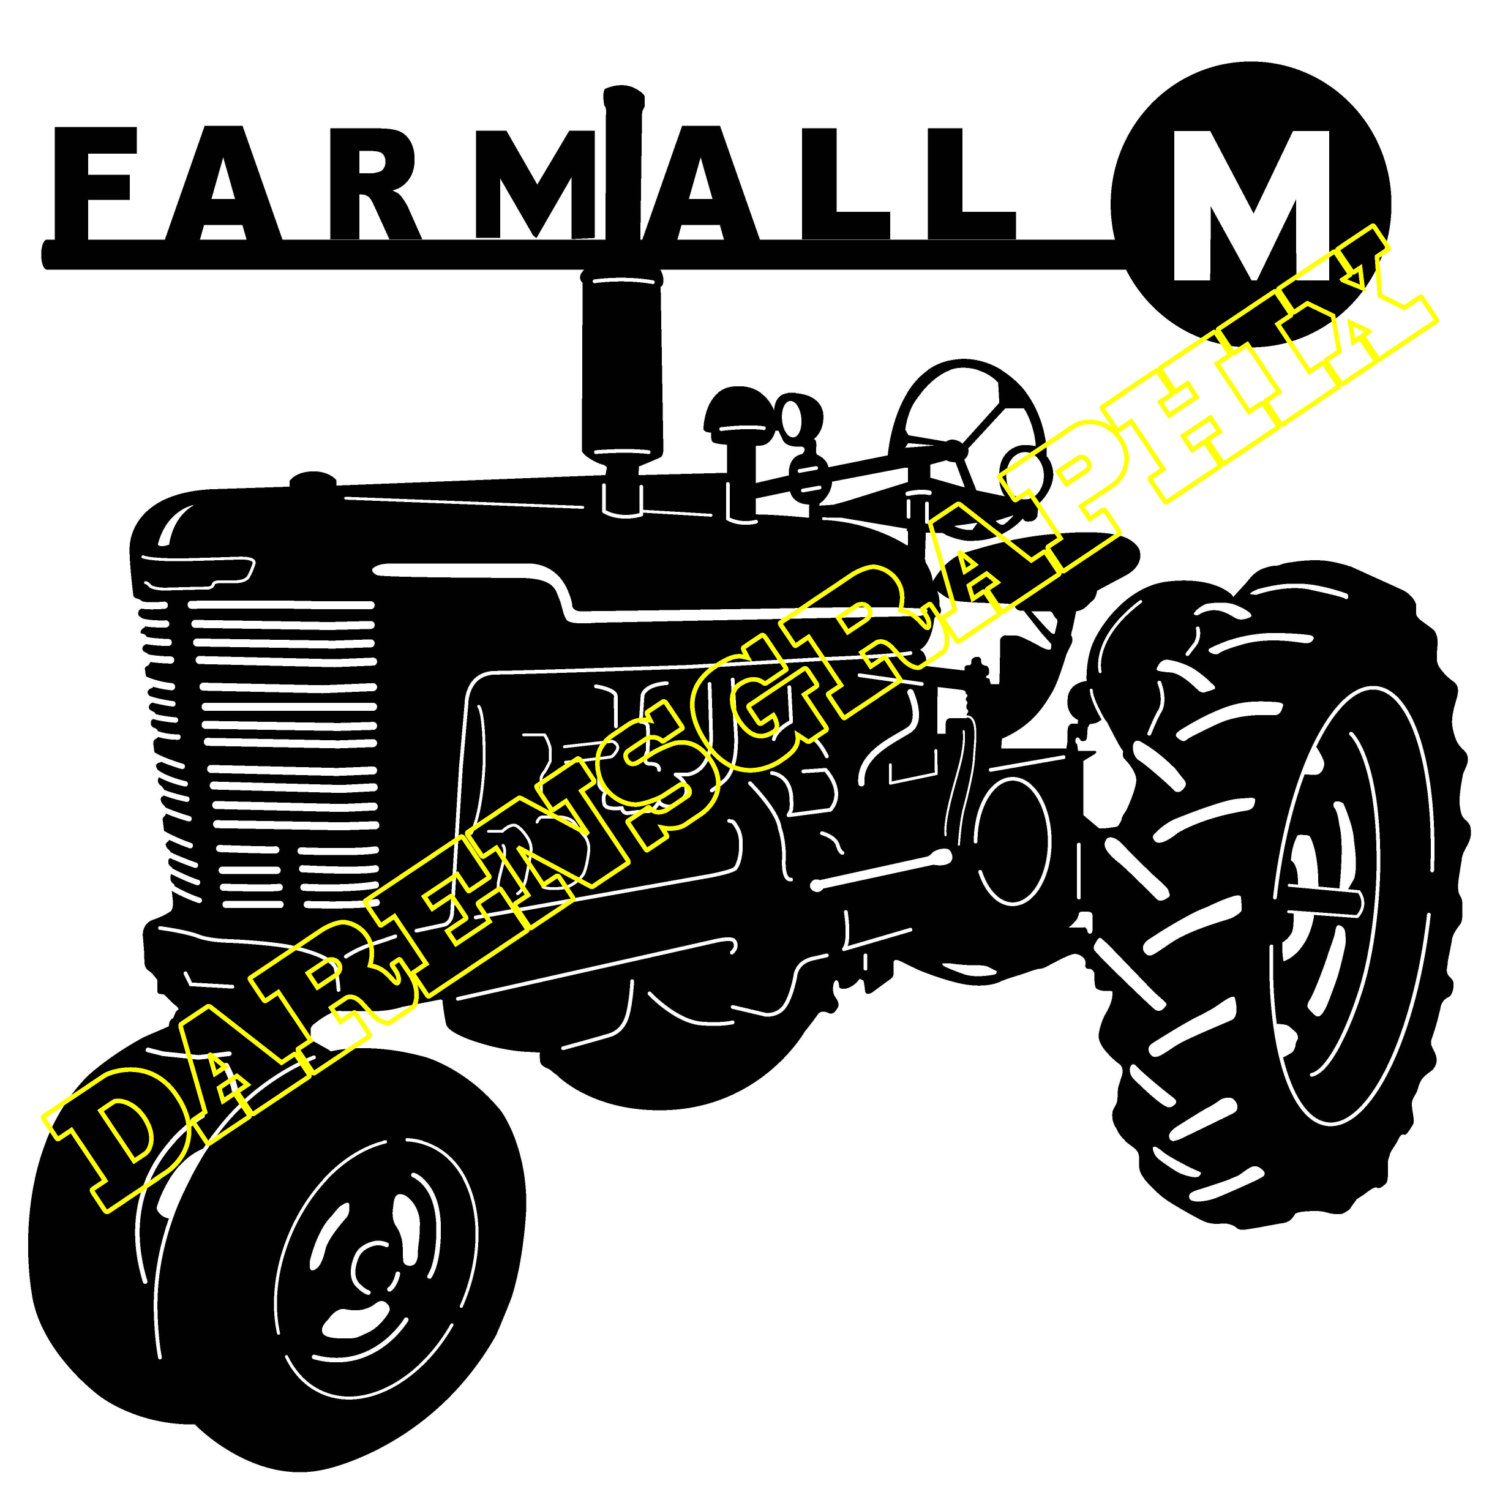 1500x1500 Dxf File Of A Farmall M Tractor For Use With A Cnc Machine